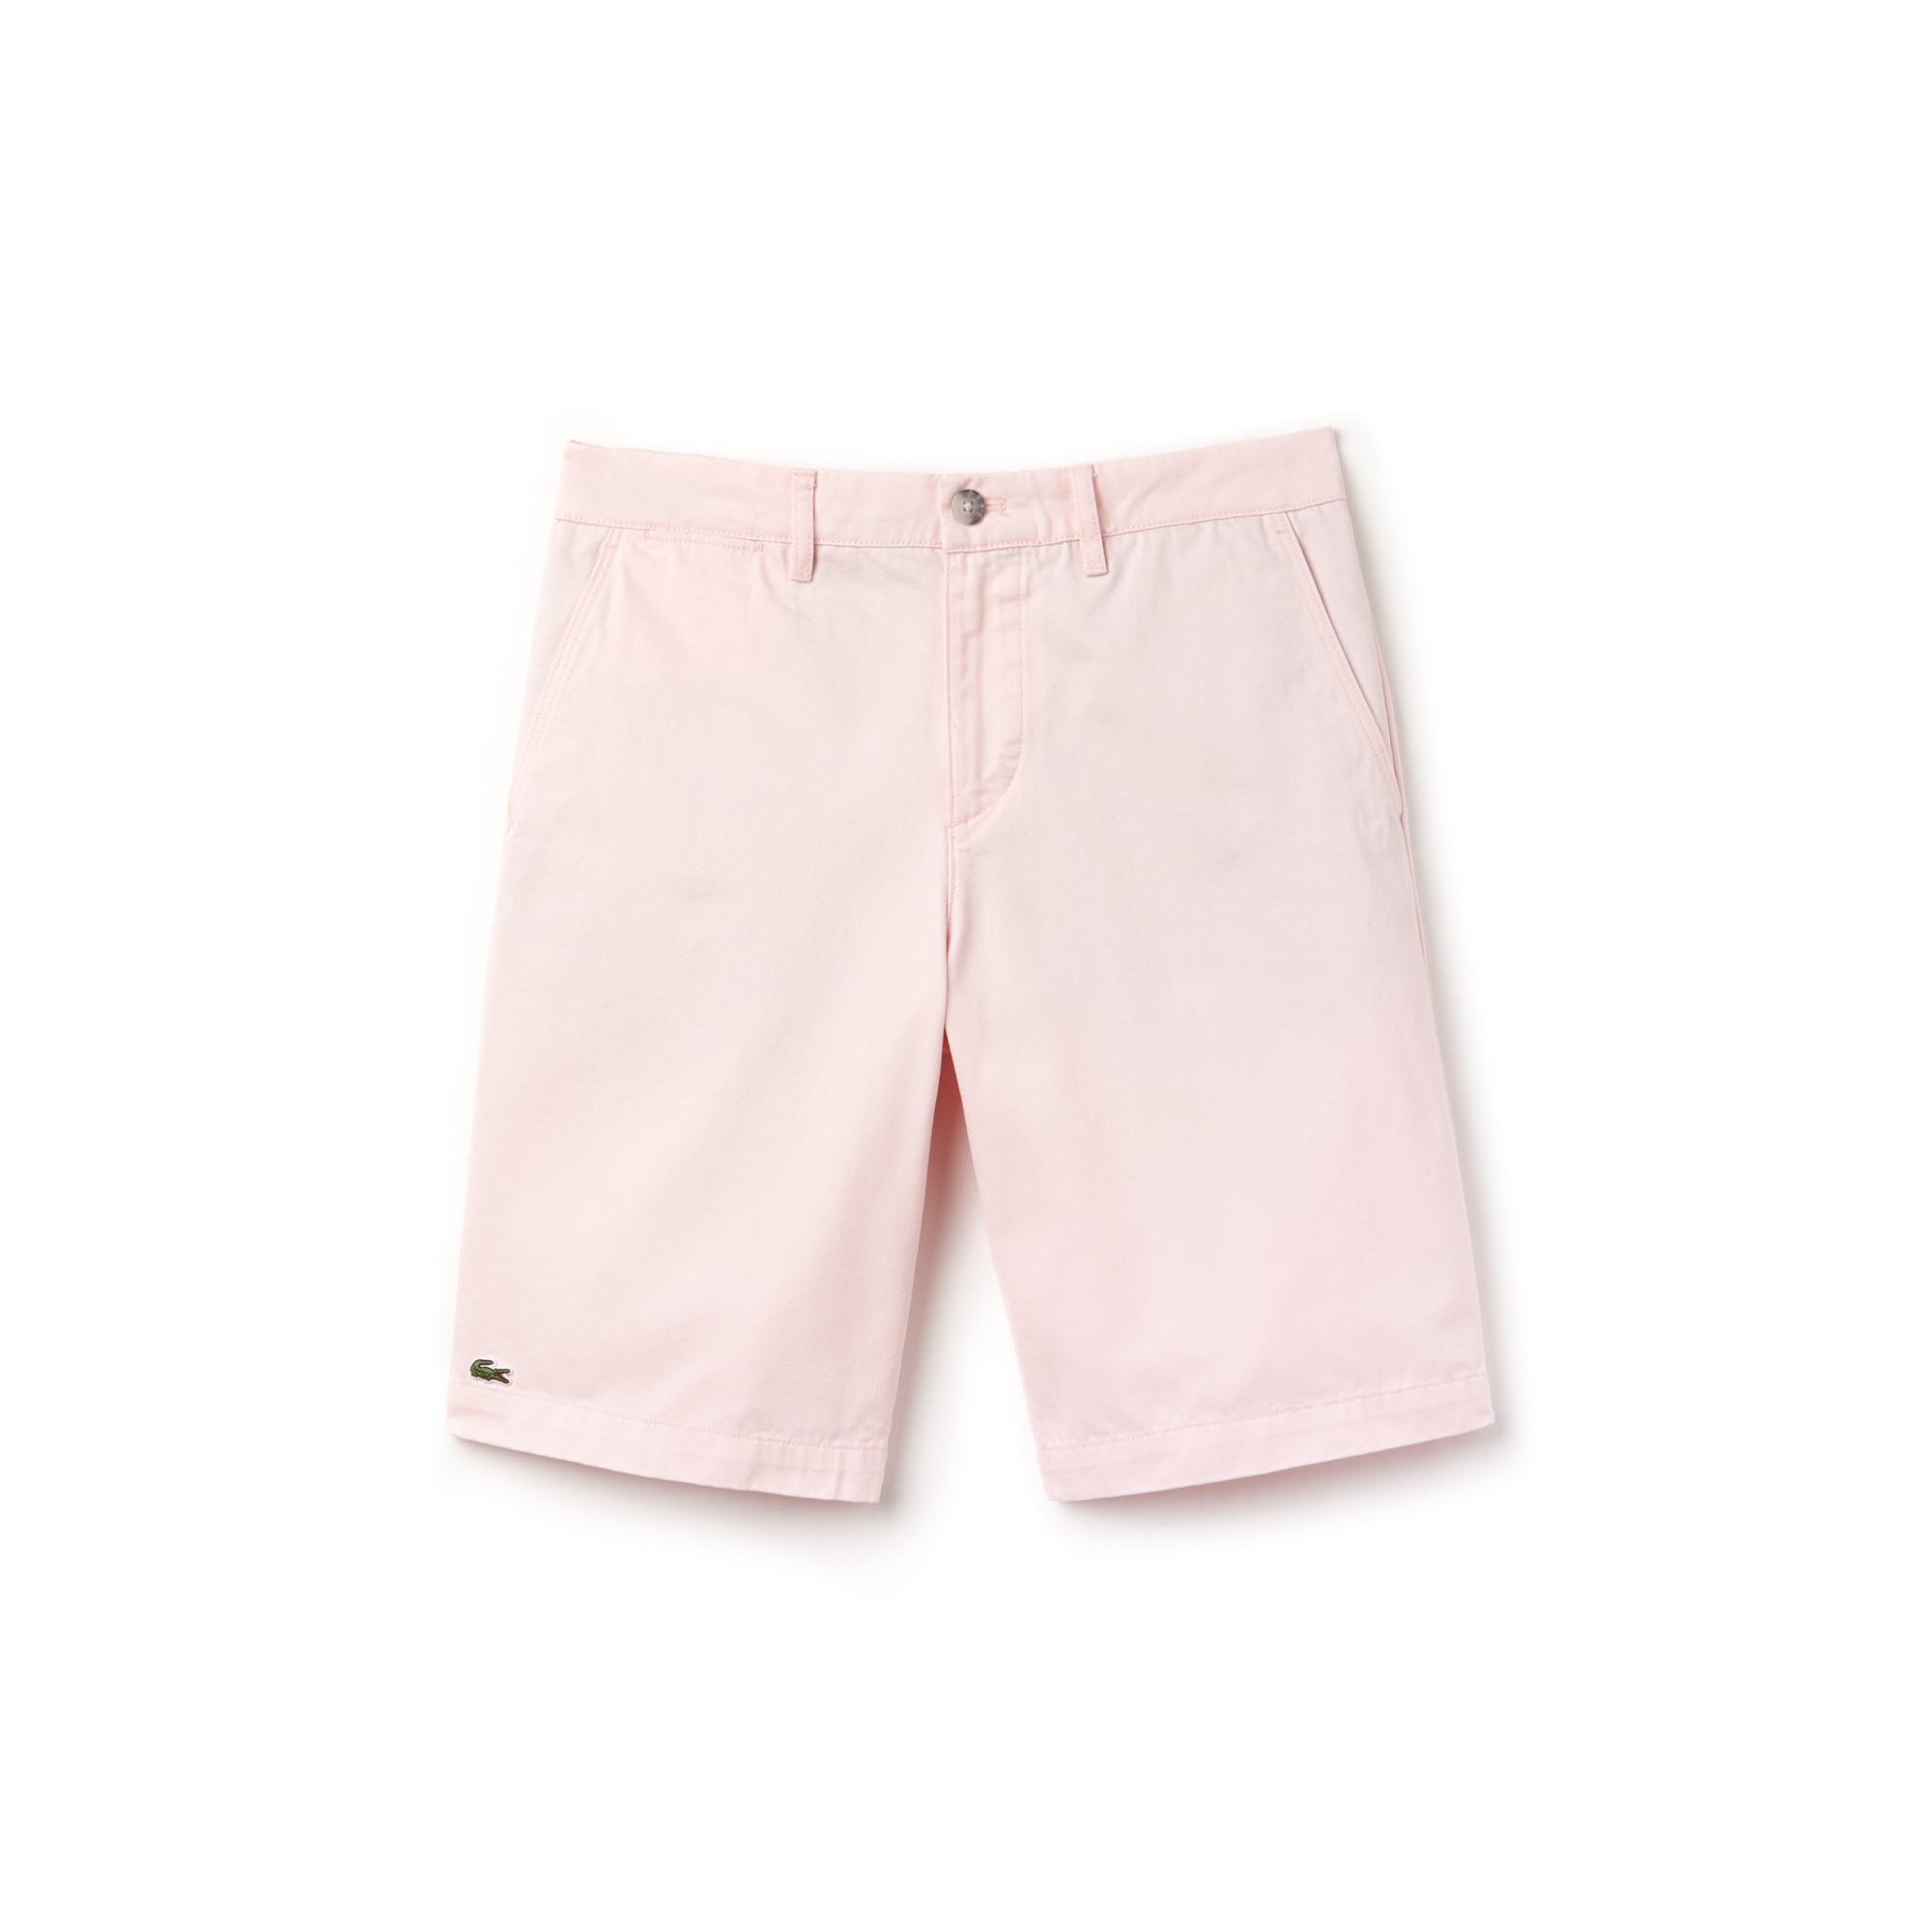 라코스테 반바지 Lacoste Mens Regular Fit Bermuda Shorts,flamingo